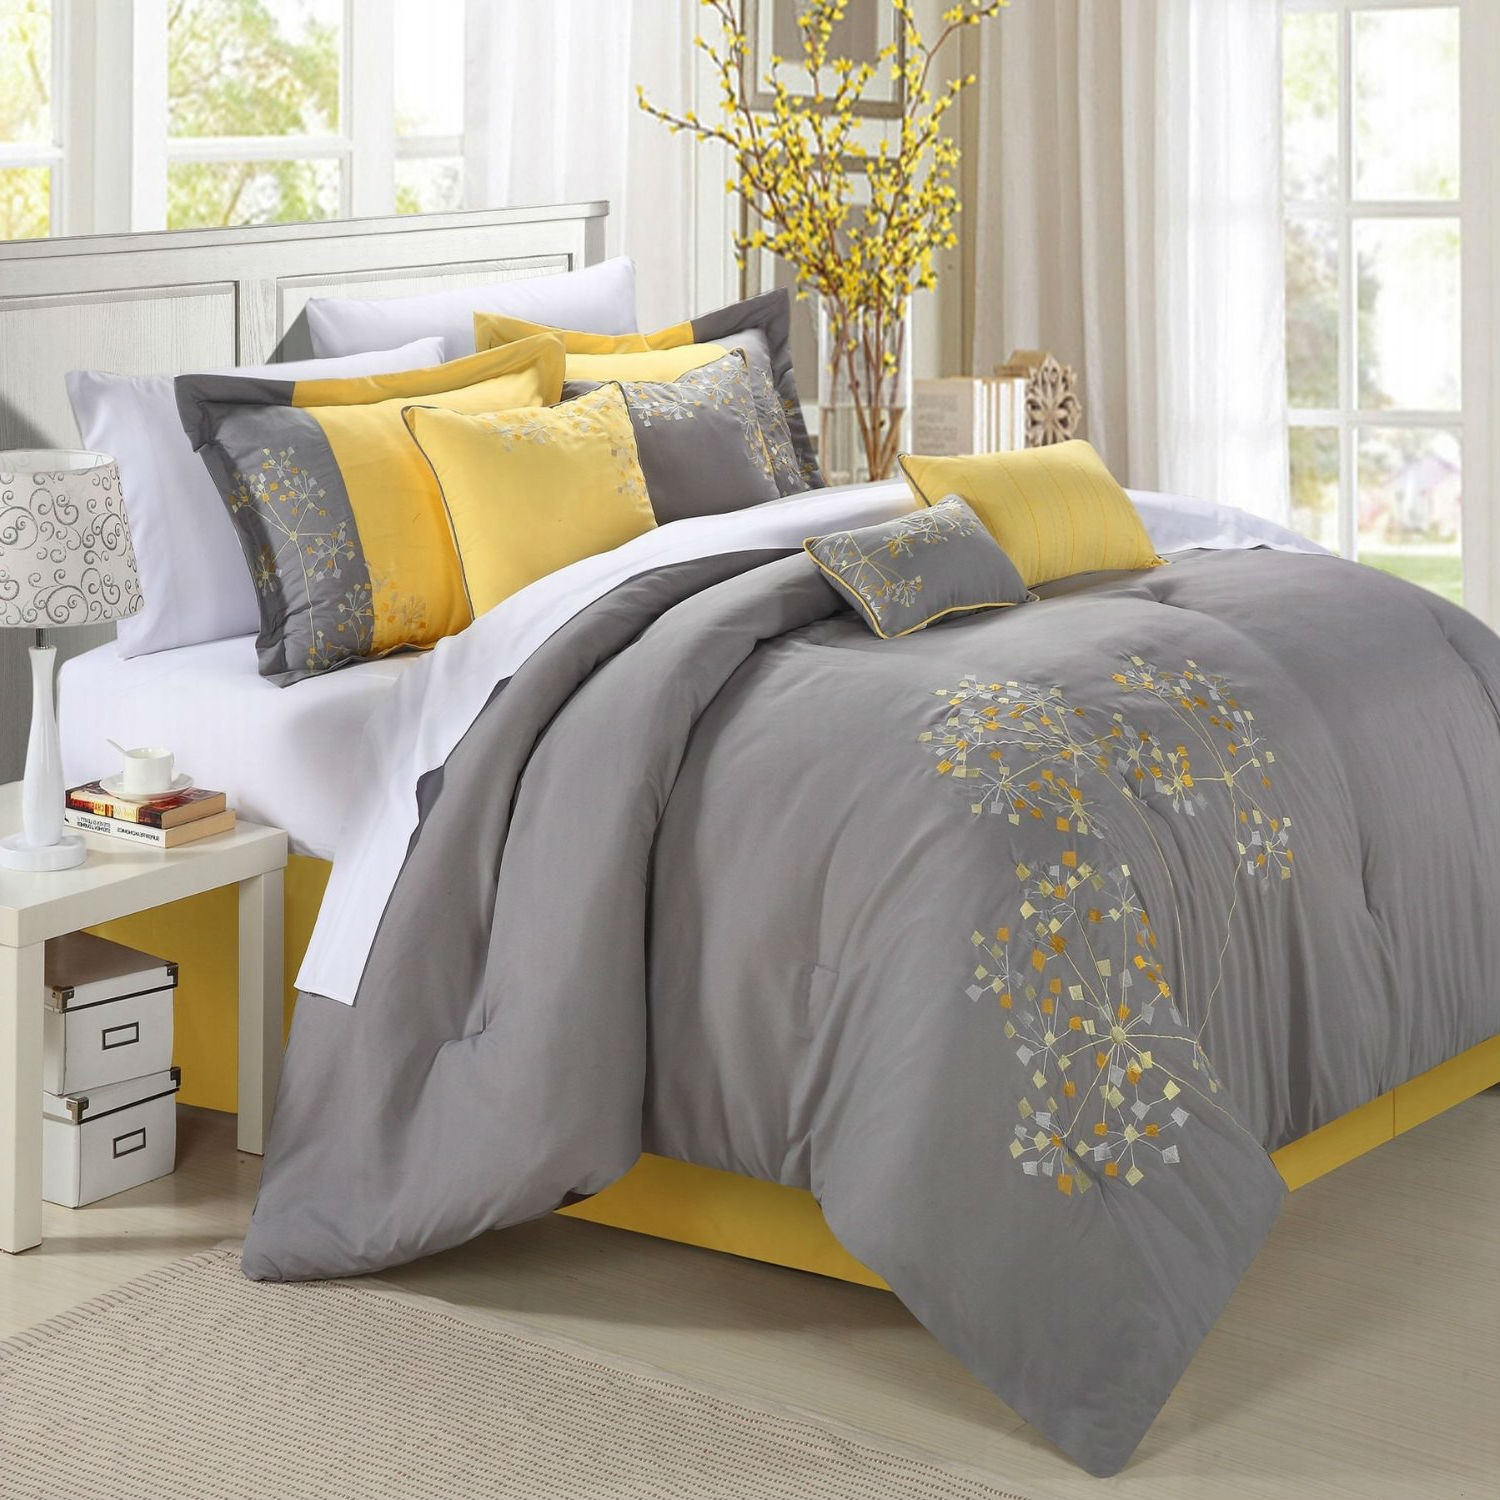 king size 8 piece modern yellow grey floral comforter set. Black Bedroom Furniture Sets. Home Design Ideas